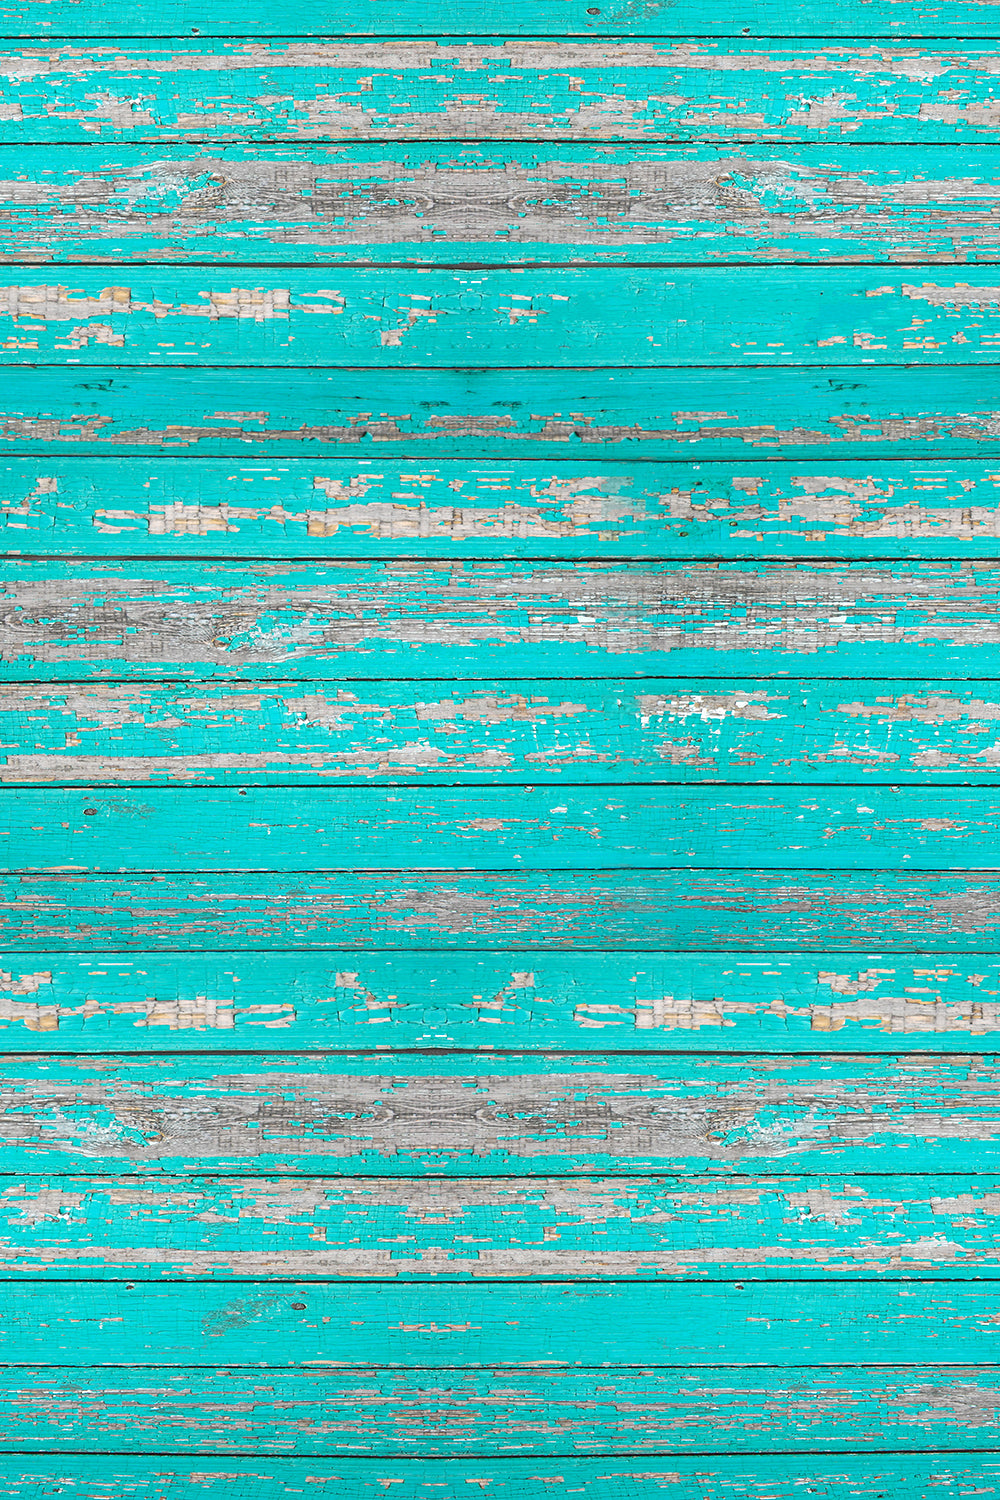 Savage Floor Drop - Distressed Teal Wood - 5'x7'